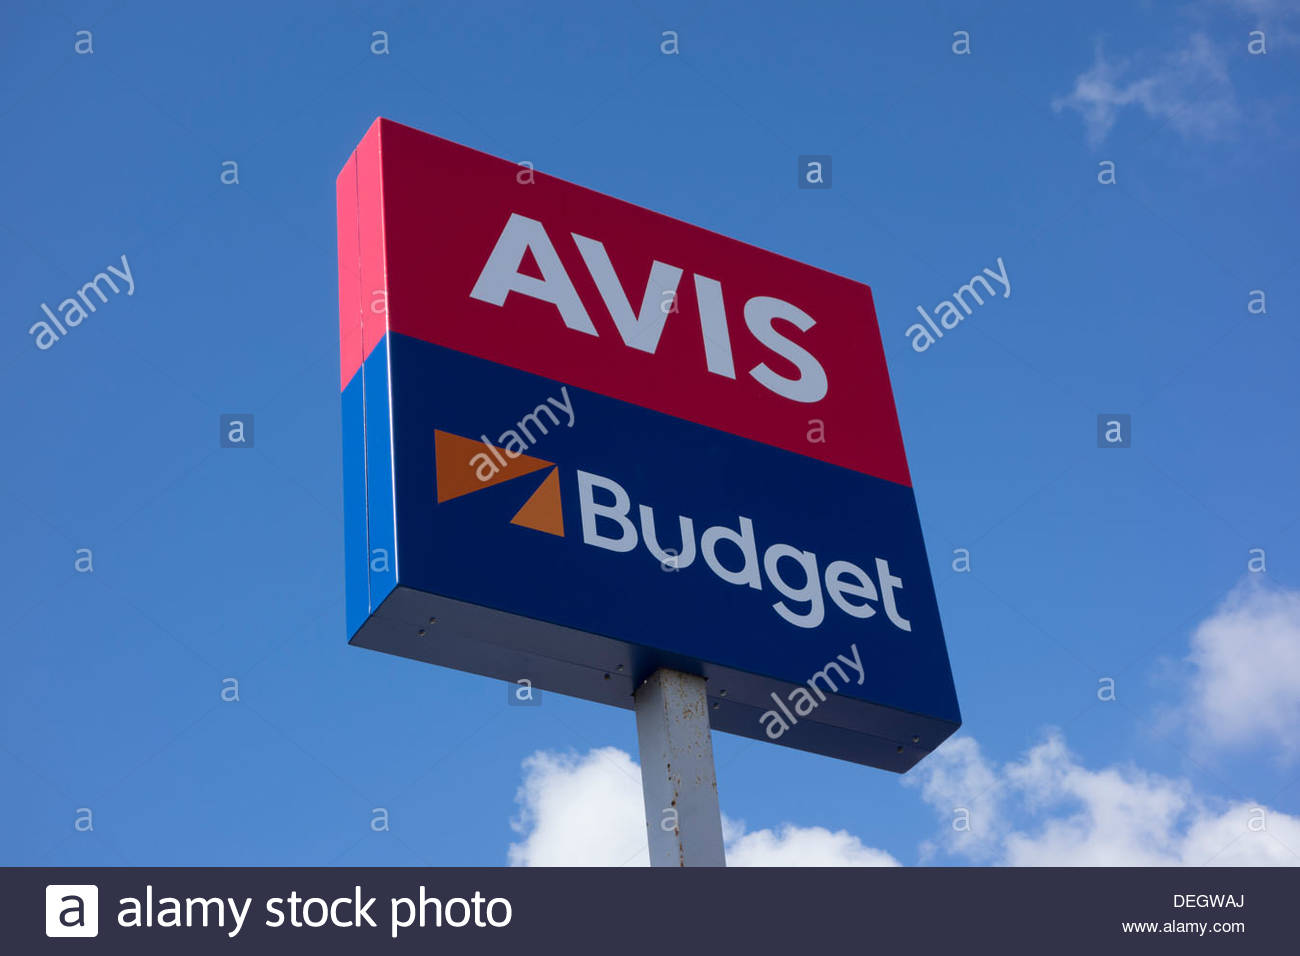 Nov 27, · Avis Car Rental coupons can help you travel for less. With more than 2, locations in the U.S, Canada, Australia, New Zealand, Latin America, and Europe, Avis Car Rental is one of the world's leading and most reputable rental car companies on the globe.